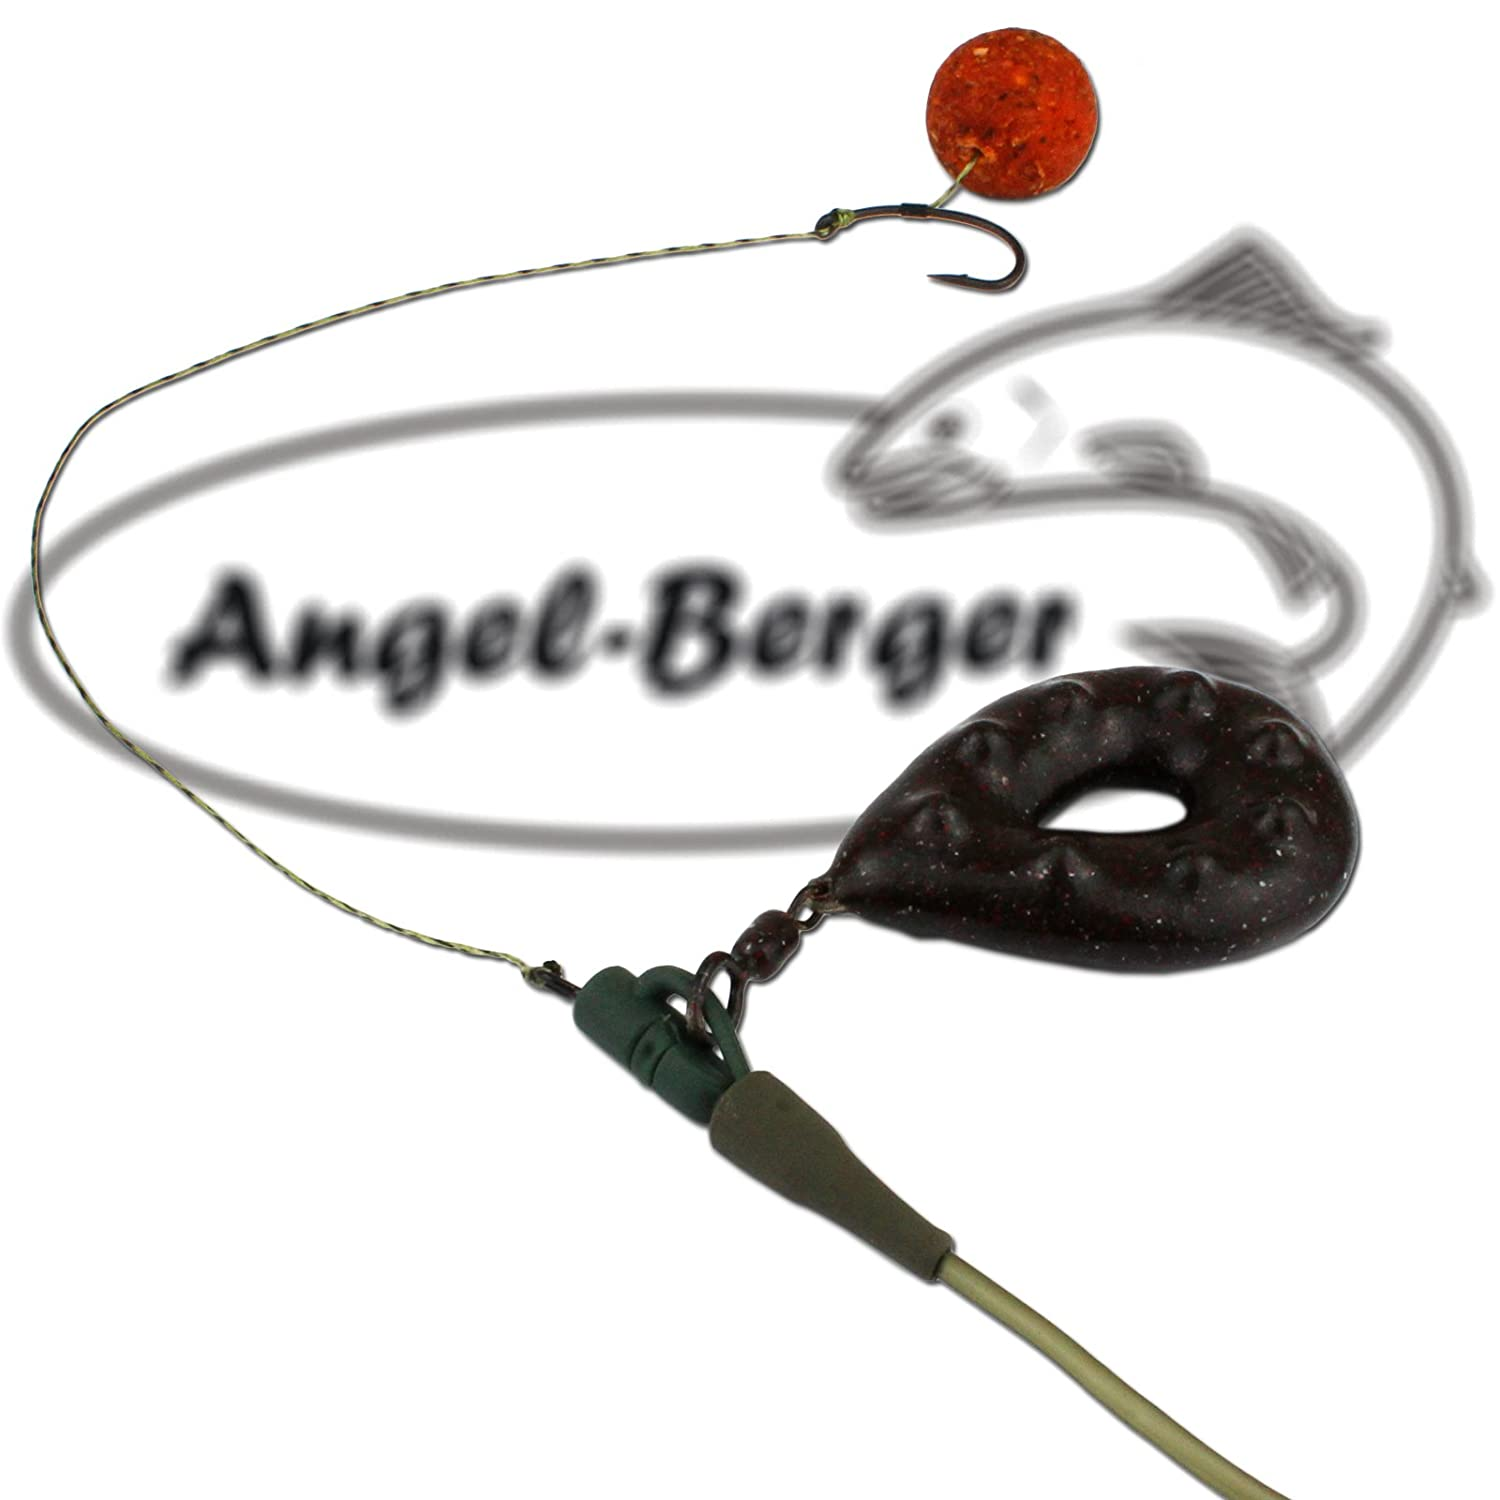 Angel Berger Carp Series Safety Lead Clips